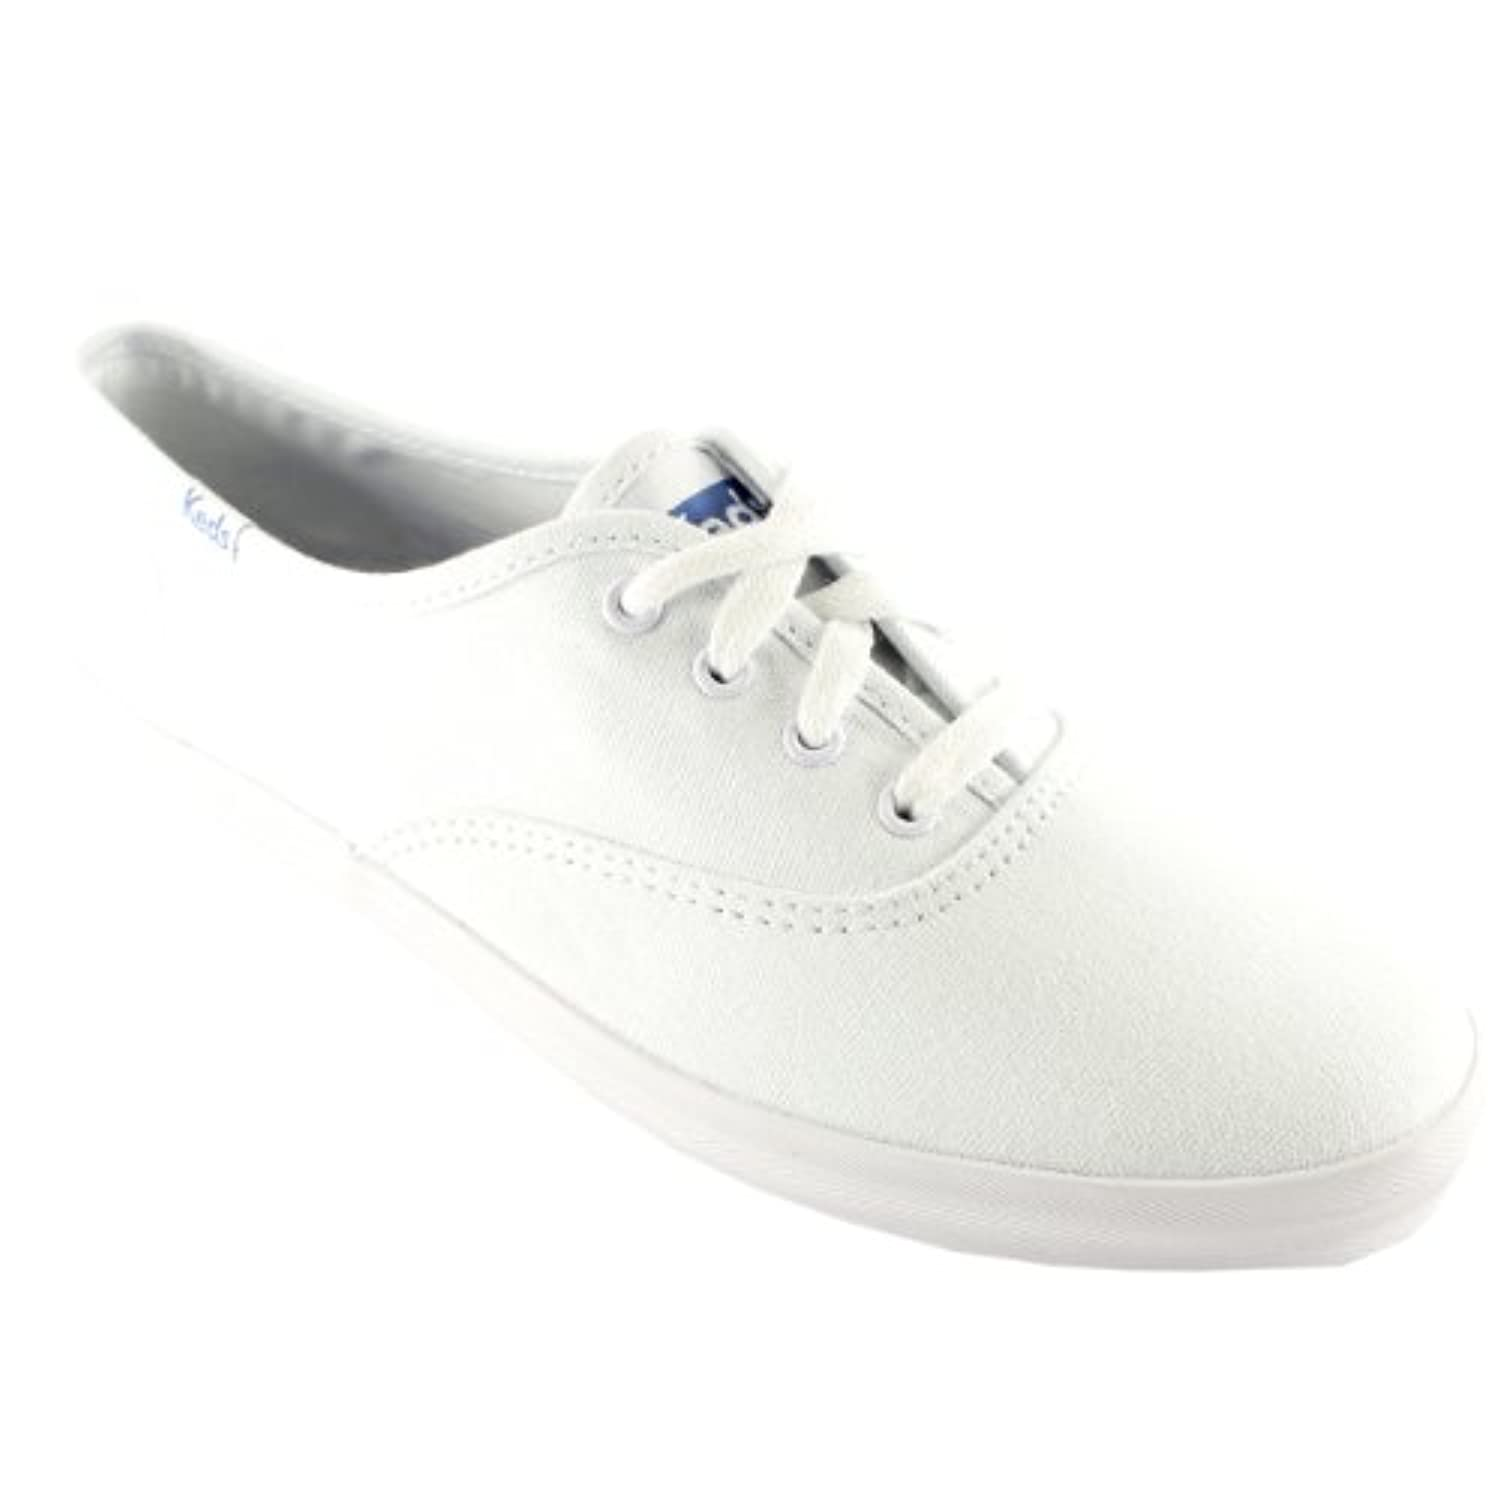 Keds Mens Canvas Shoes